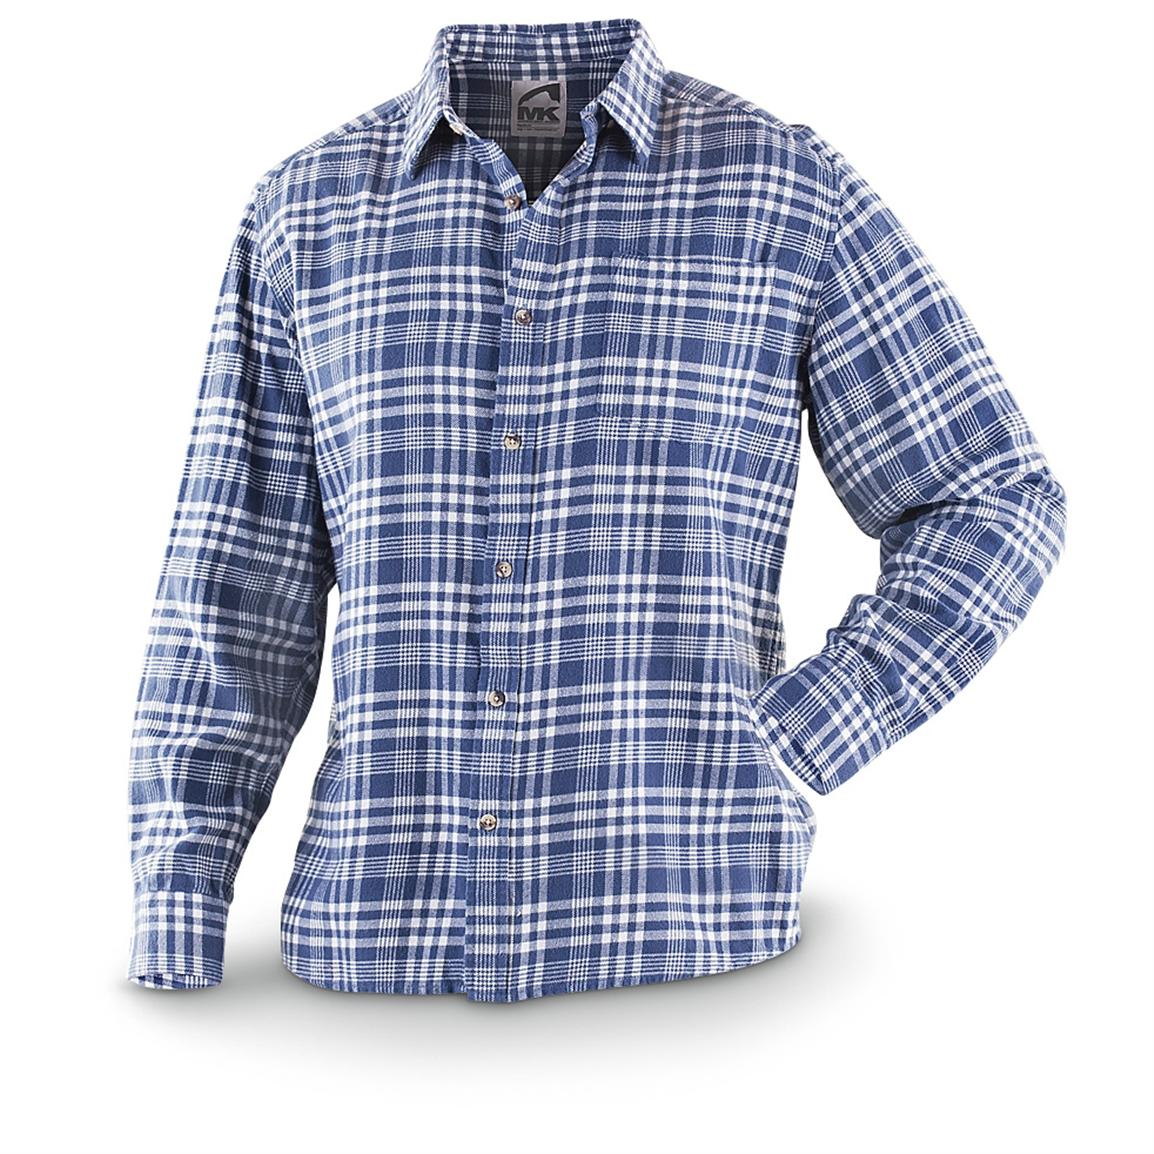 Mountain Khakis Peden Plaid Long-sleeved Shirt, Navy / Lily White